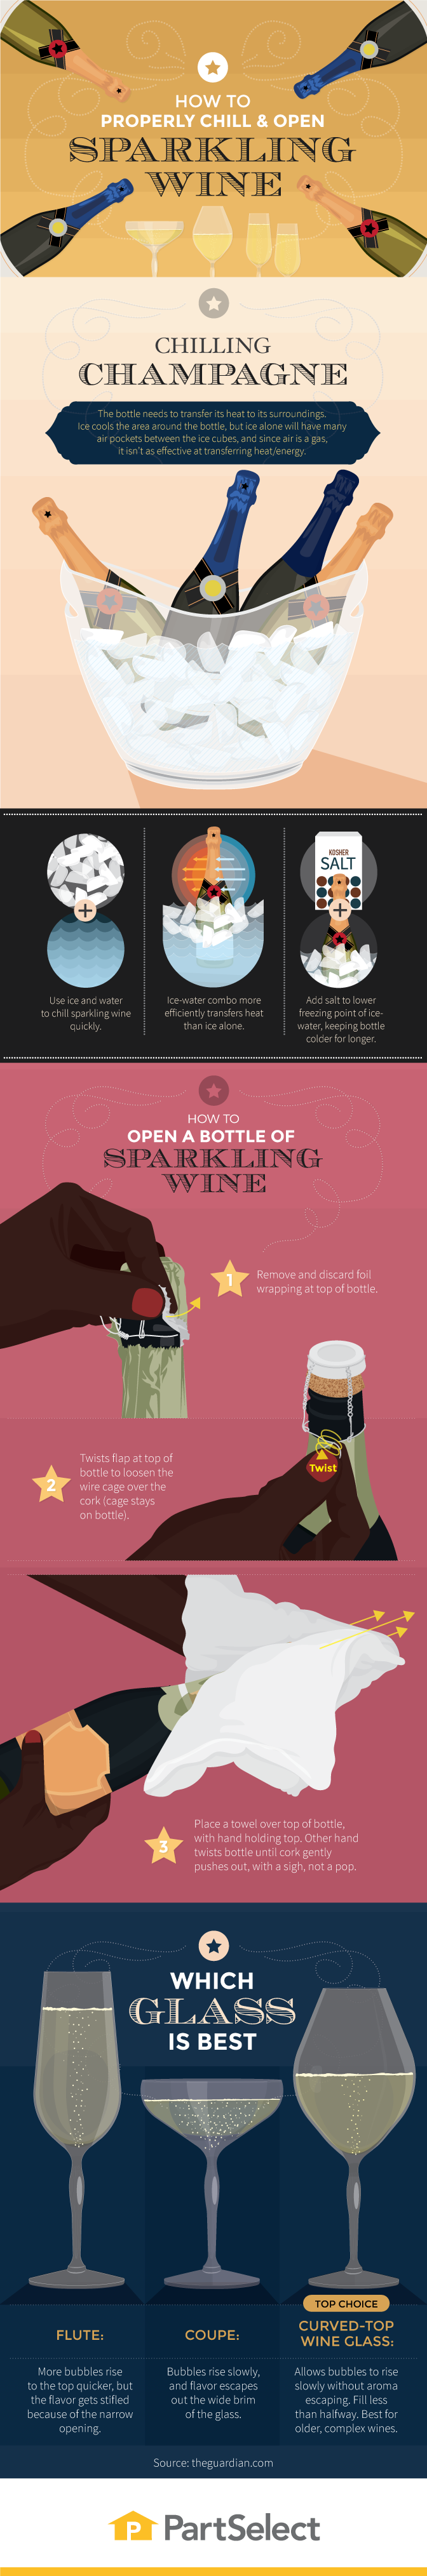 How to Properly Chill and Open Sparkling Wine #Infographic